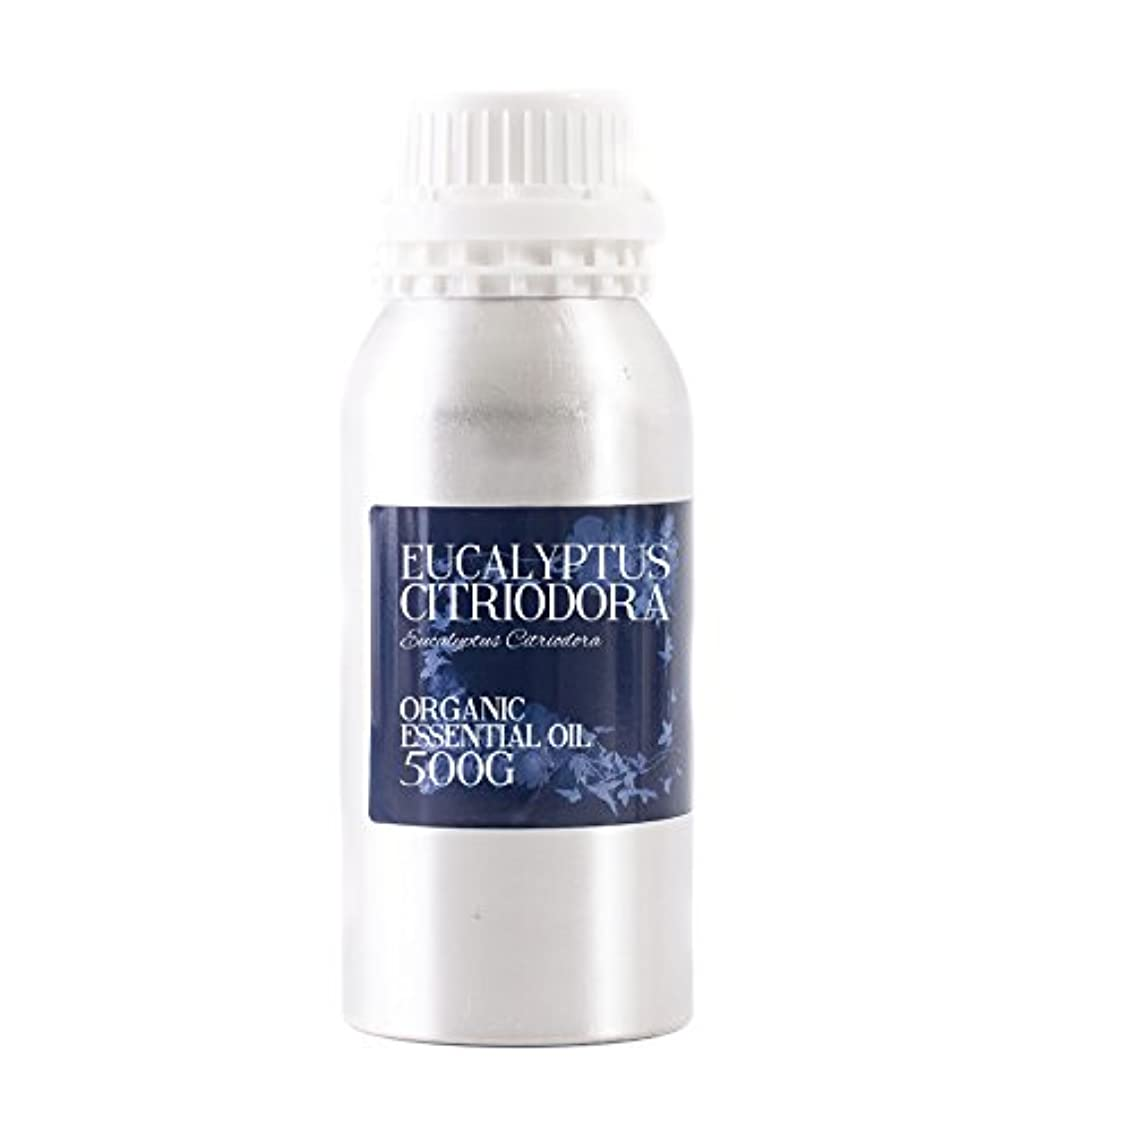 保険をかける考えた労働Eucalyptus Citriodora Organic Essential Oil - 500g - 100% Pure